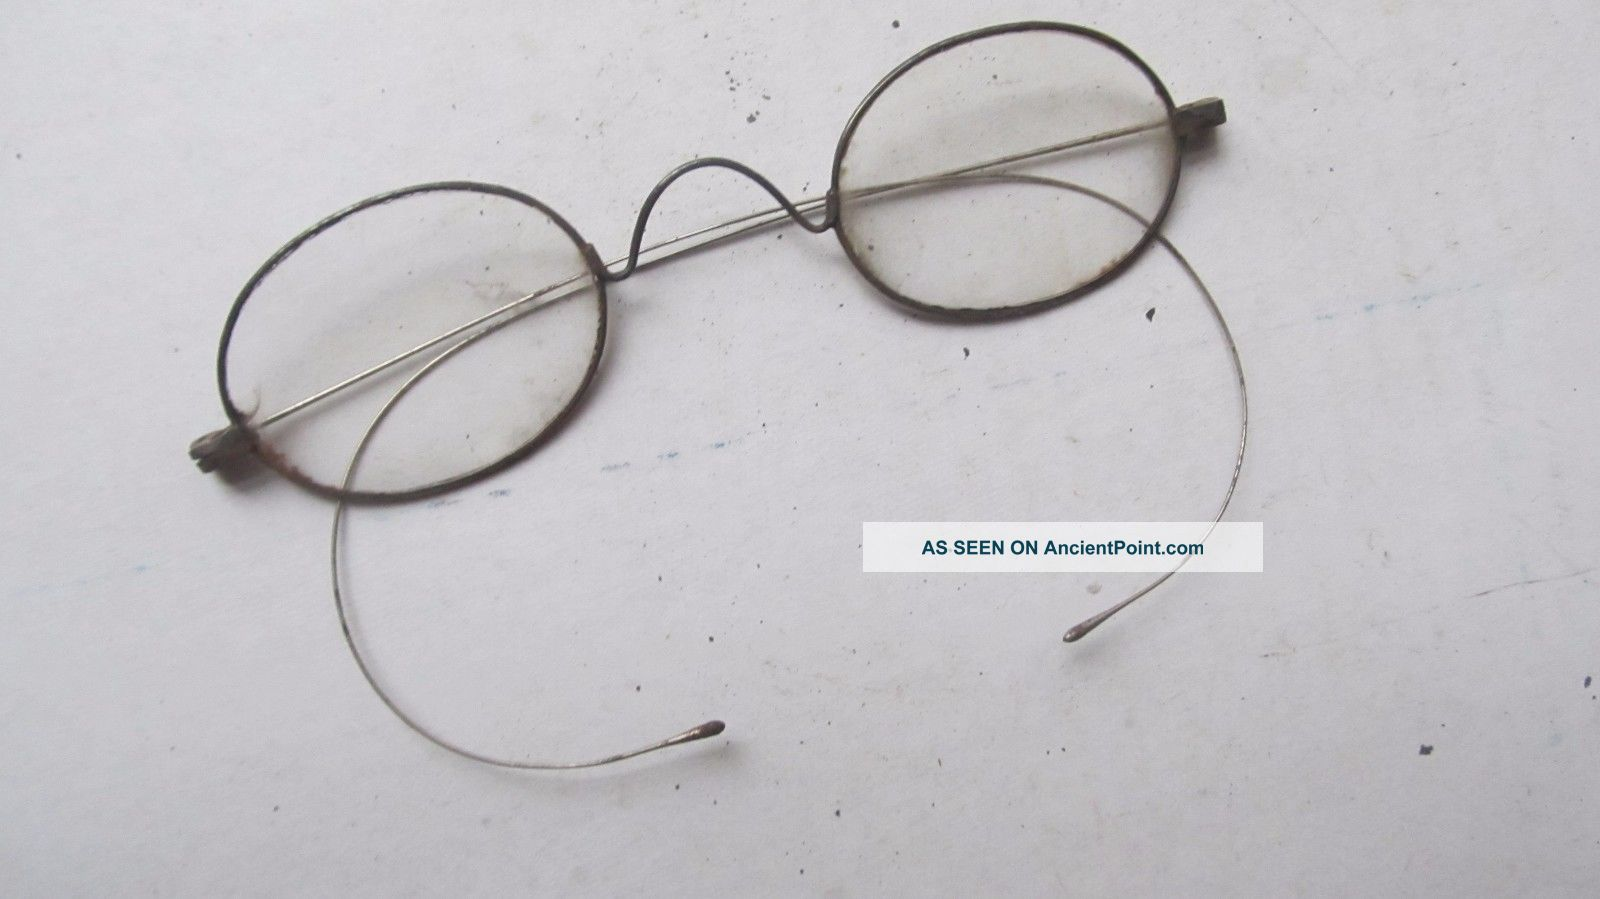 Early Antique Victorian Oval Eyeglasses,  Costume,  Halloween,  Glasses,  1870 Optical photo